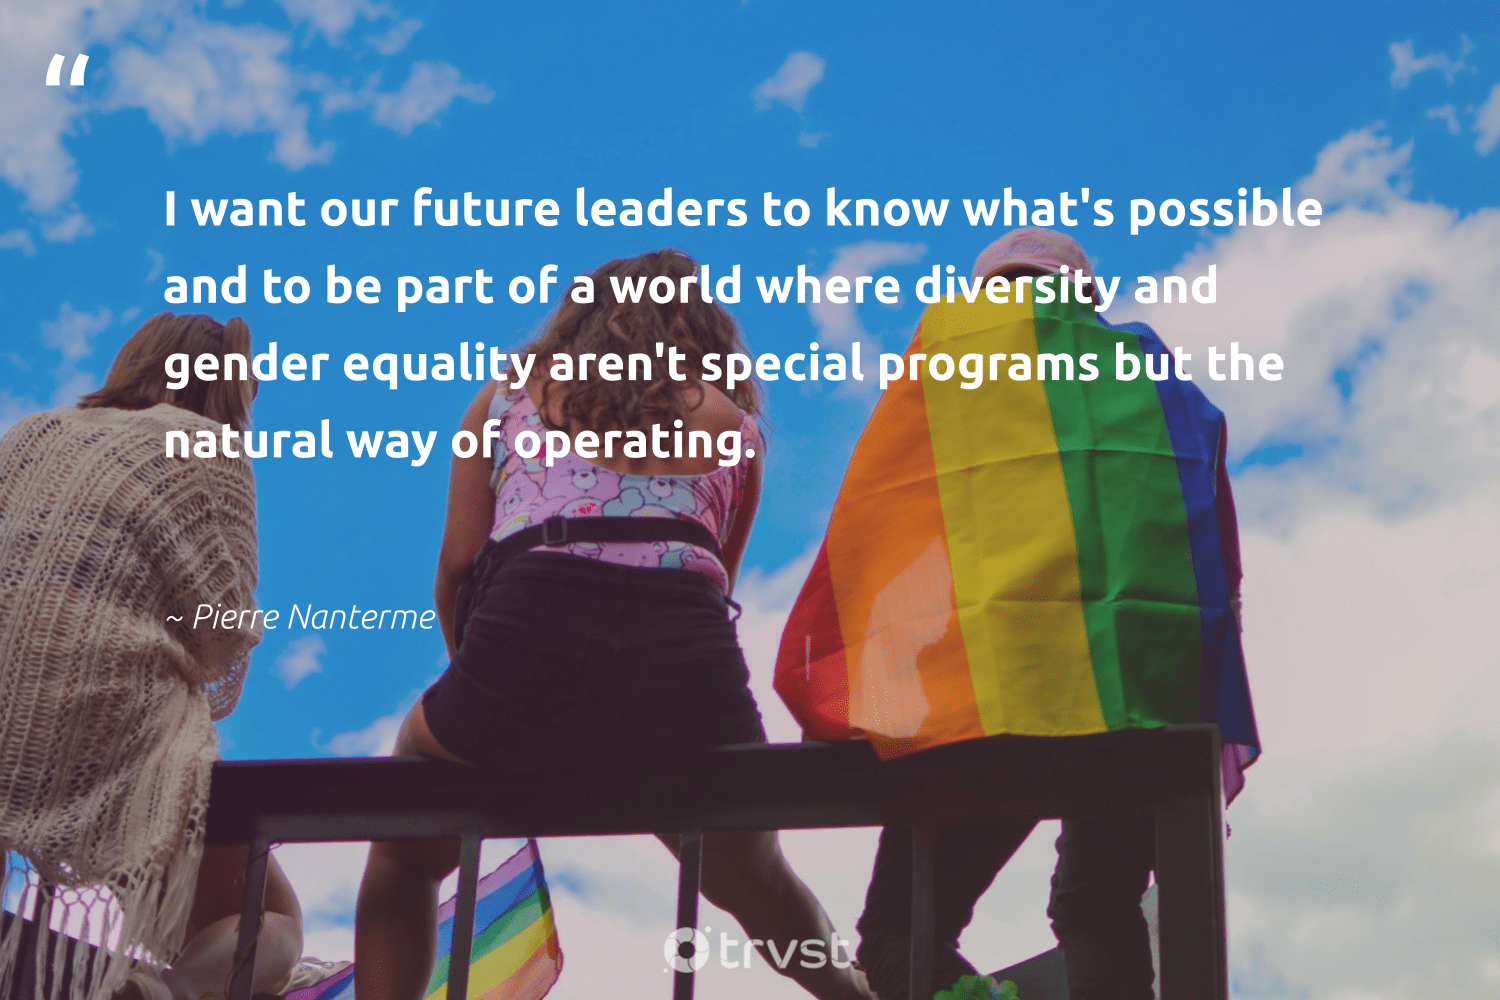 """I want our future leaders to know what's possible and to be part of a world where diversity and gender equality aren't special programs but the natural way of operating.""  - Pierre Nanterme #trvst #quotes #diversity #natural #equality #genderequality #gender #discrimination #equalrights #bethechange #giveback #impact"